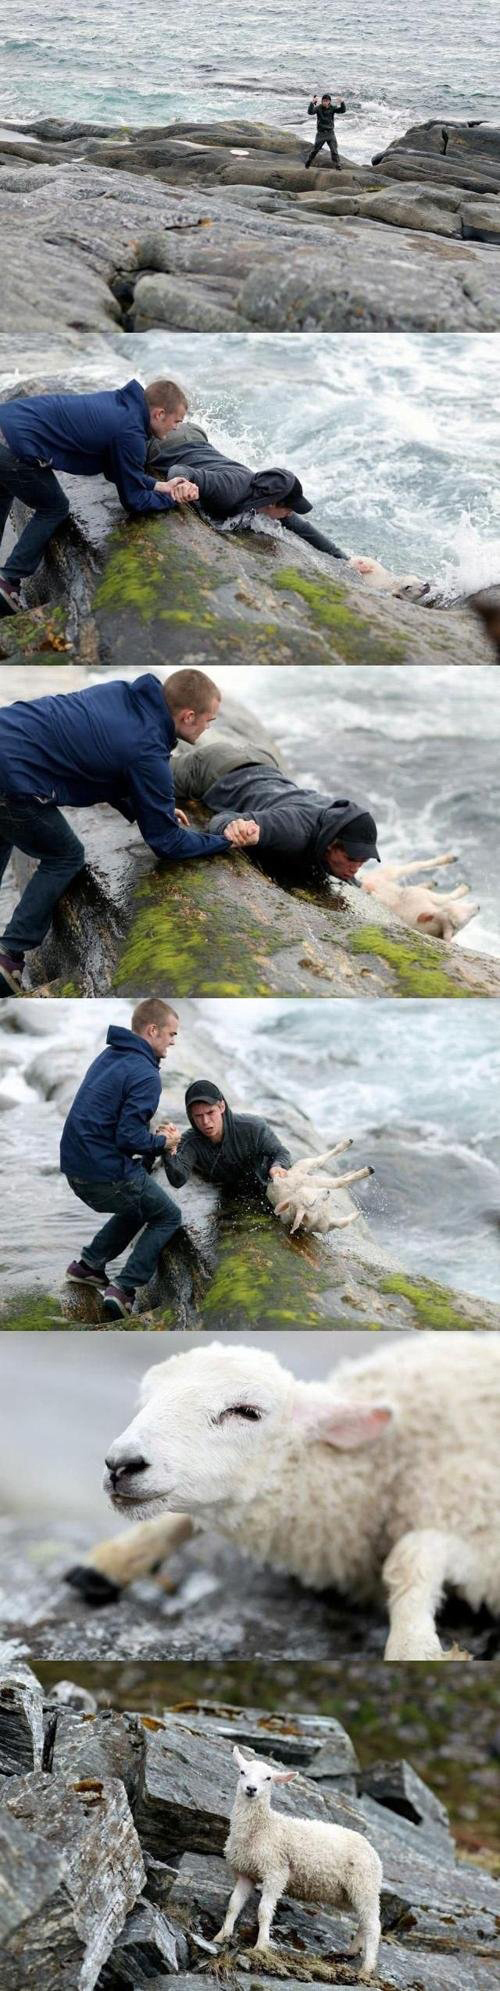 Two Norwegian guys rescuing a sheep from the ocean.